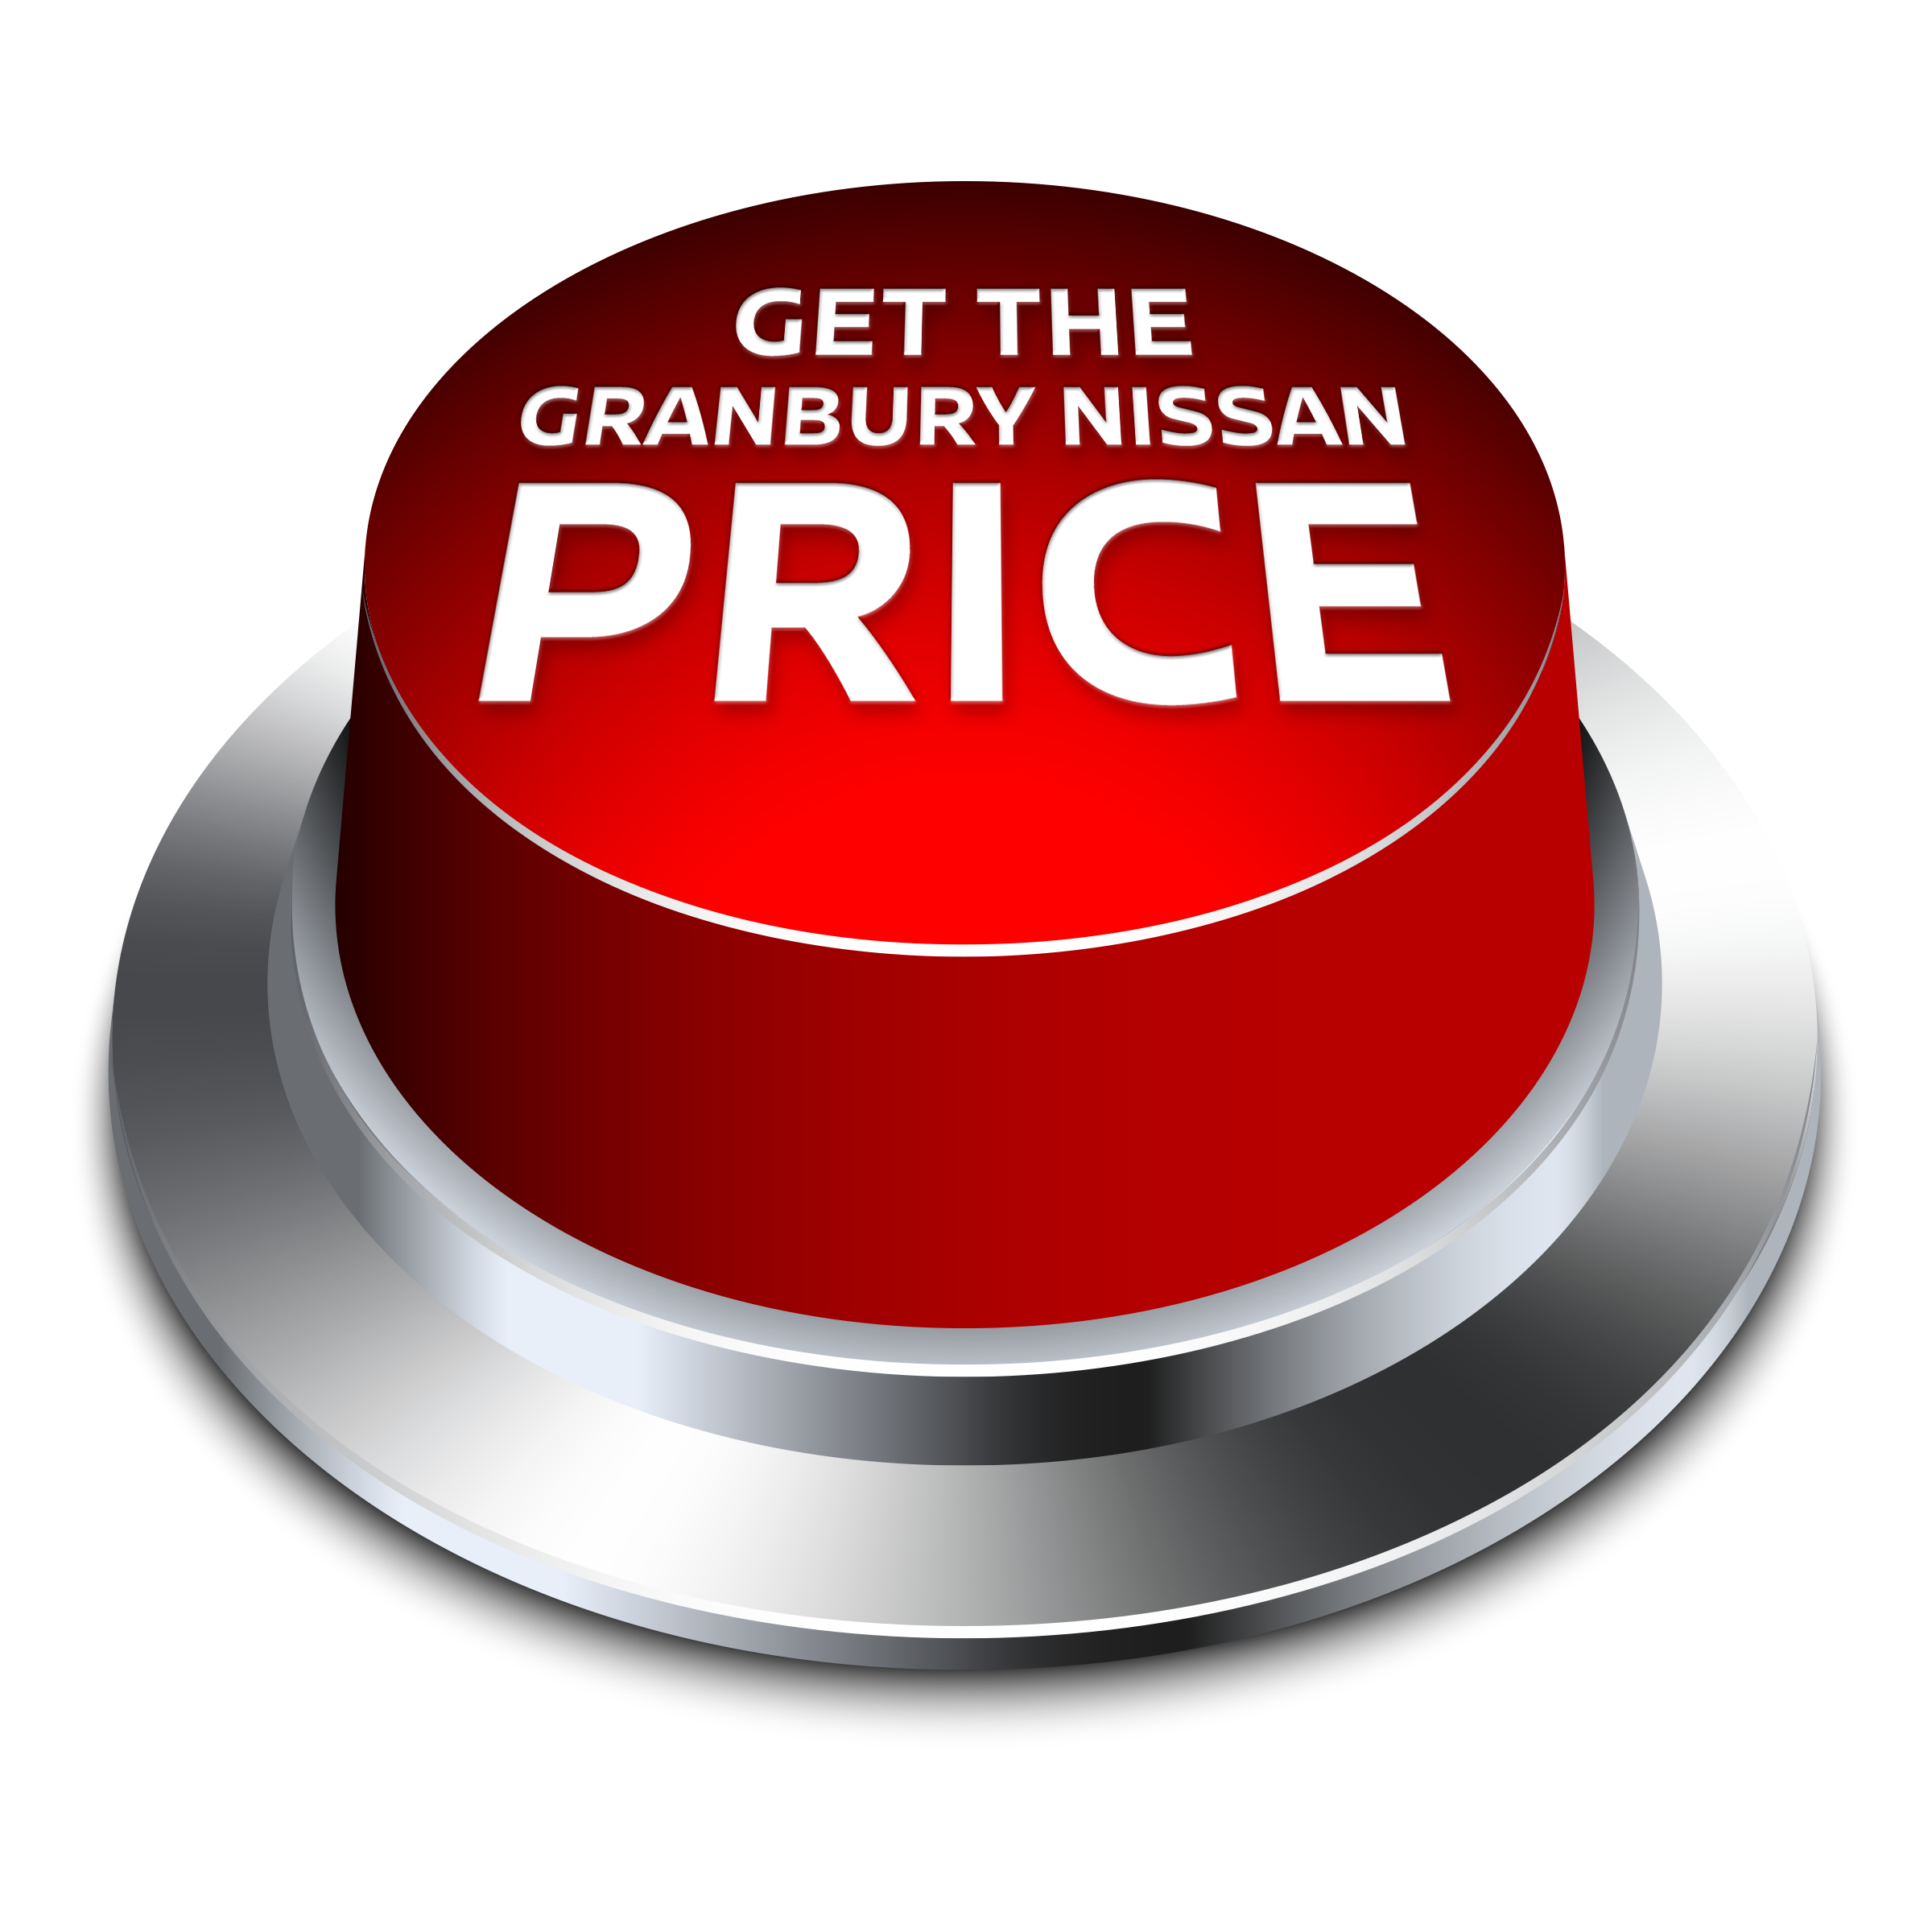 Get Price for this 2016 Nissan Sentra FE+ S 4dr Car